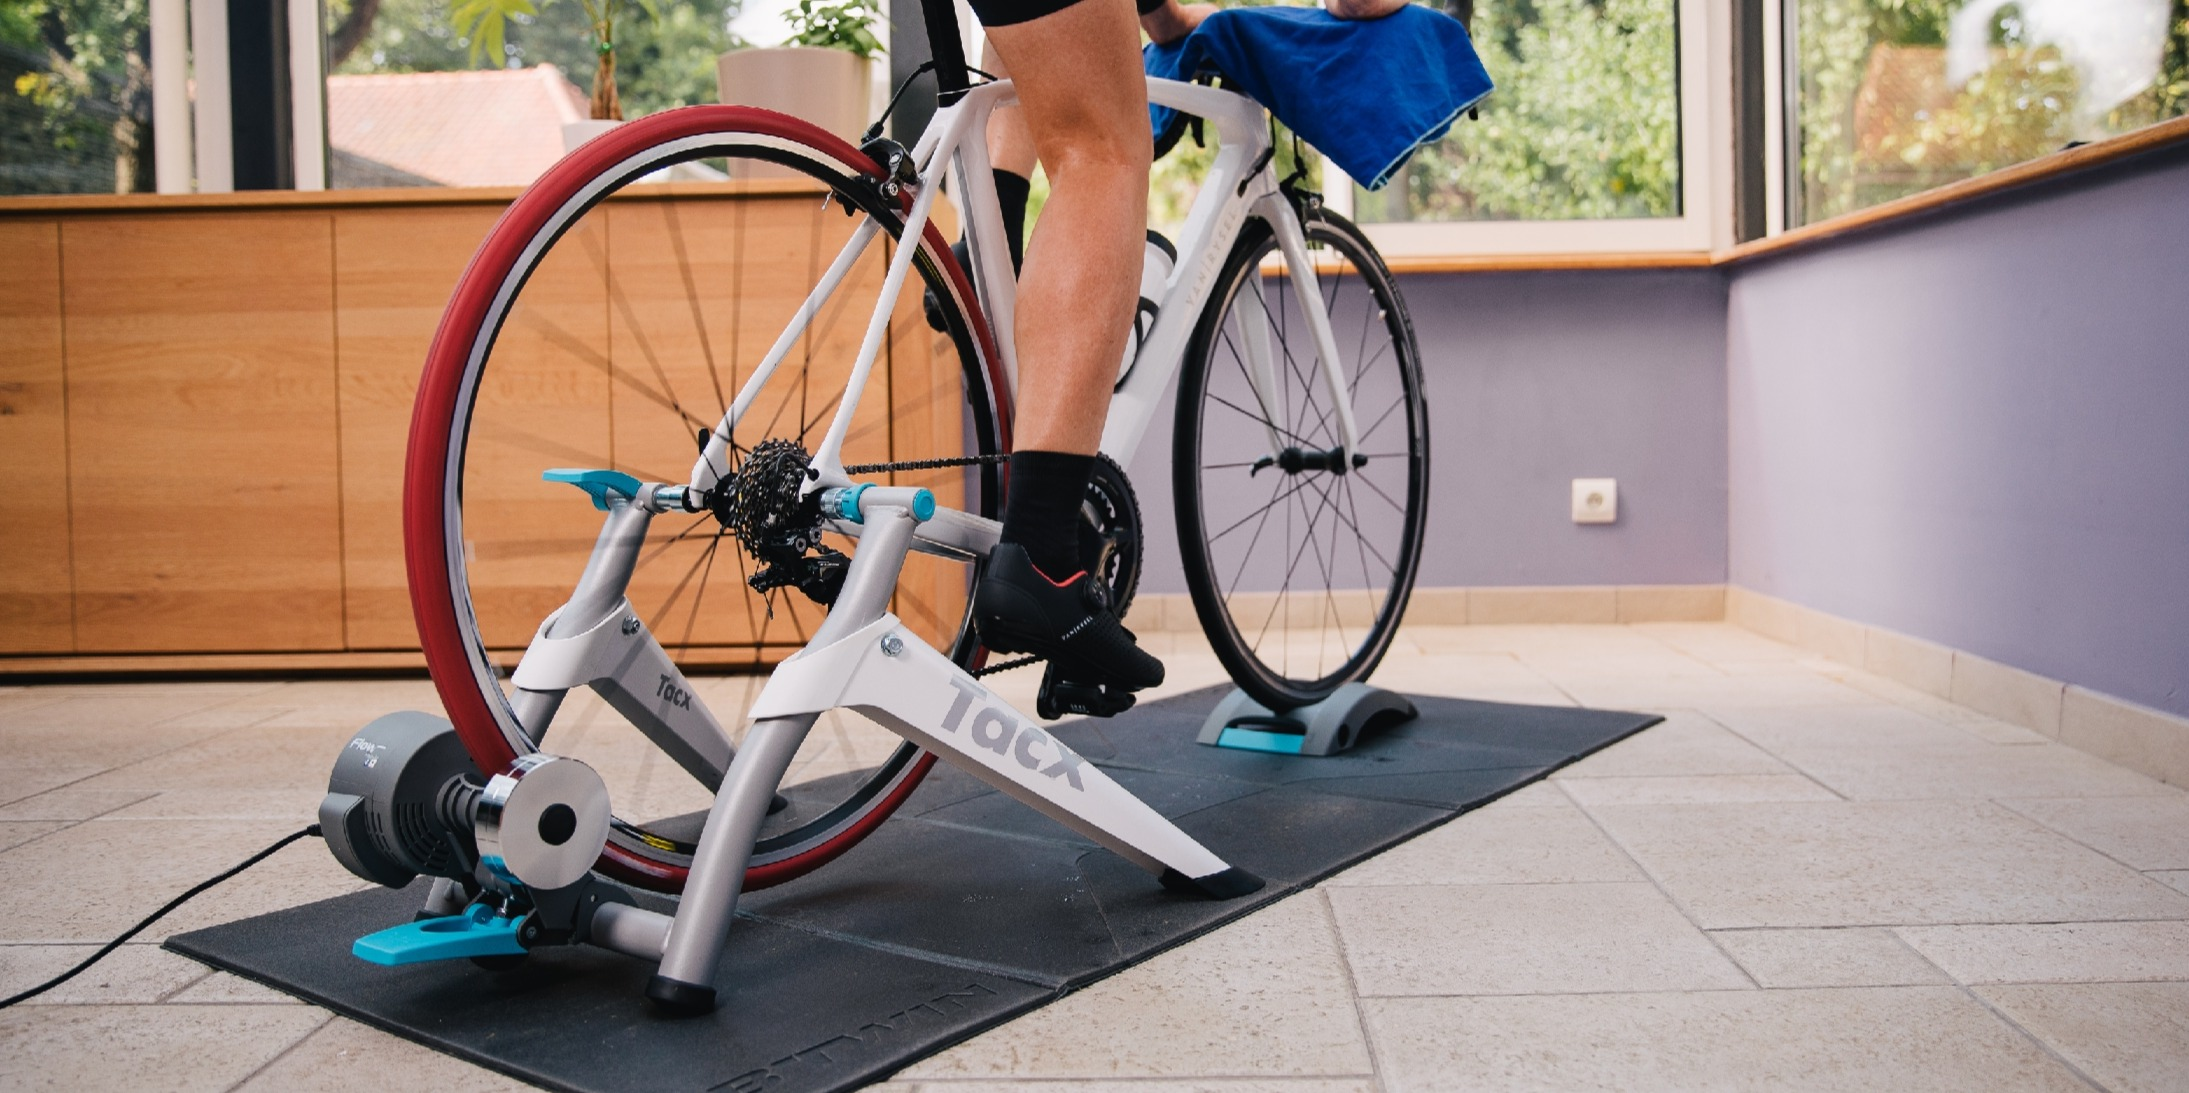 Rollers Vs Turbo Trainers - What Works Best For You?